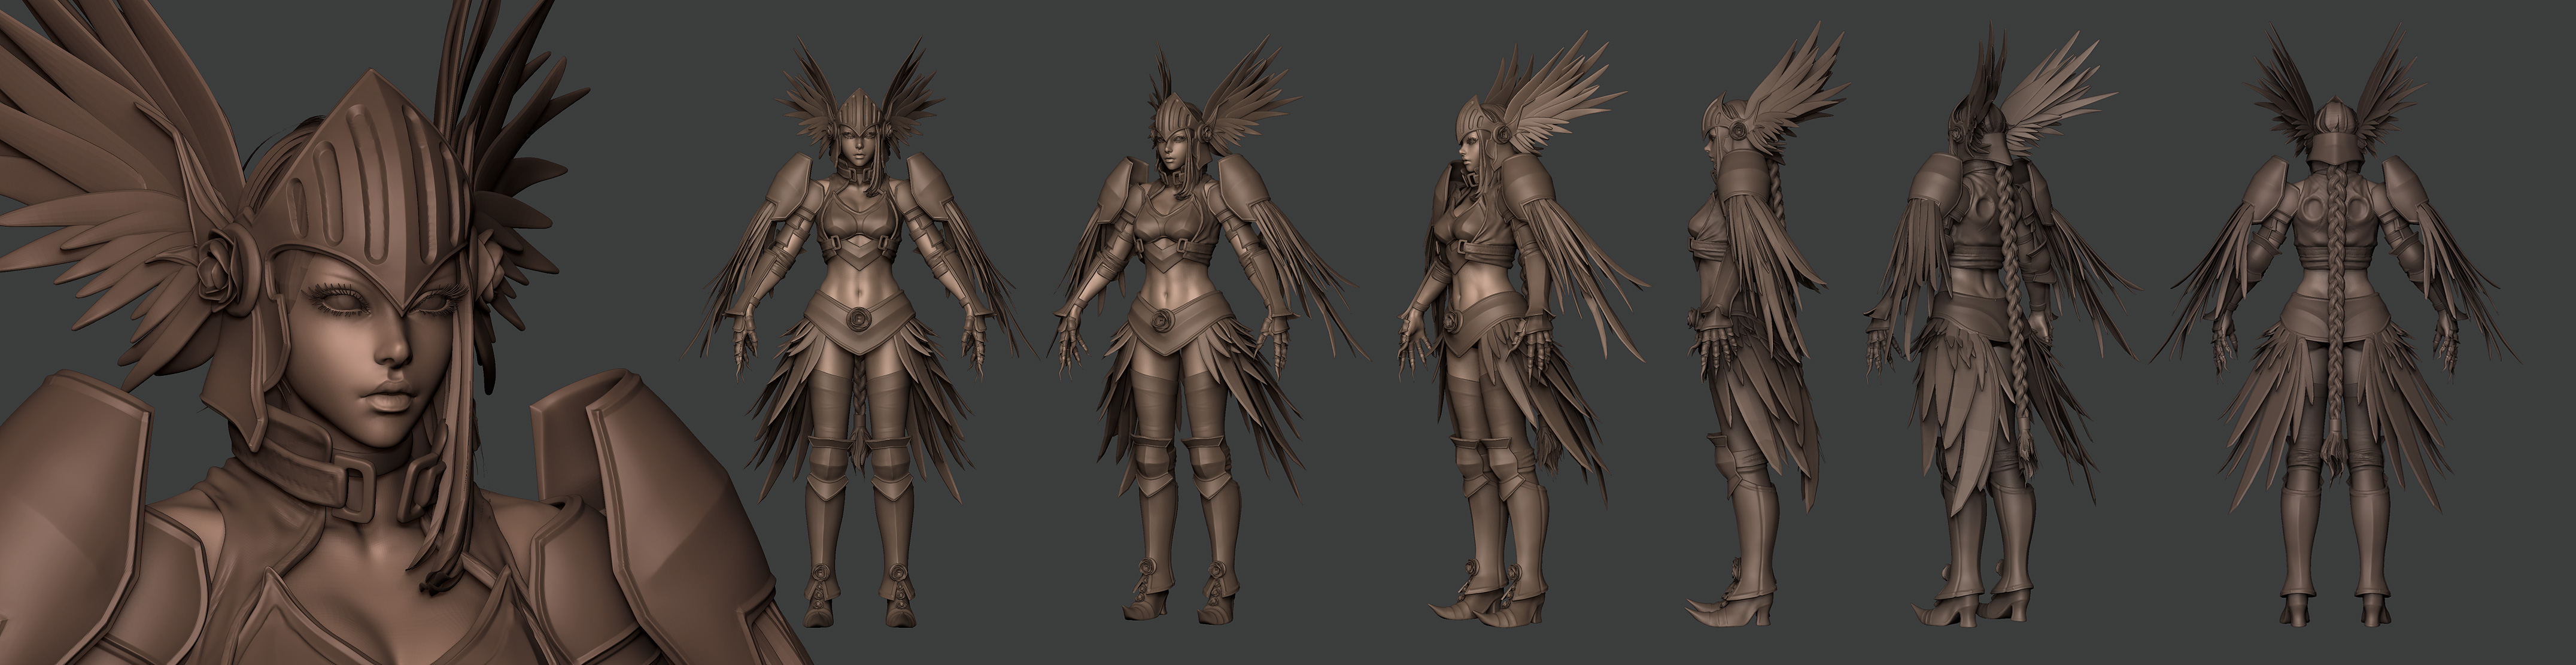 2010 Comicon: Valkyrie WIP 25 by HazardousArts